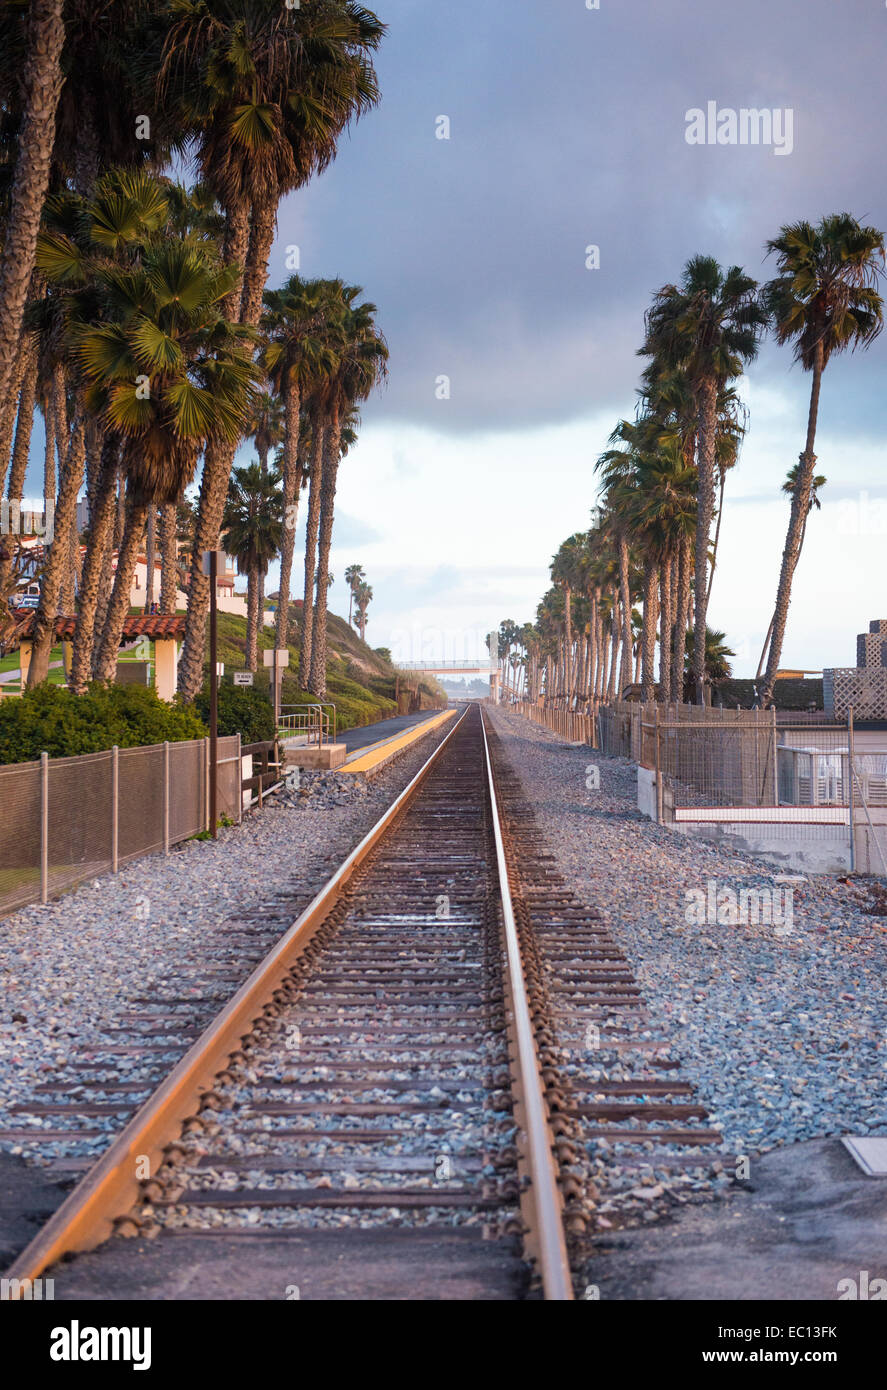 Railway tracks by the San Clemente Pier, California. Stock Photo